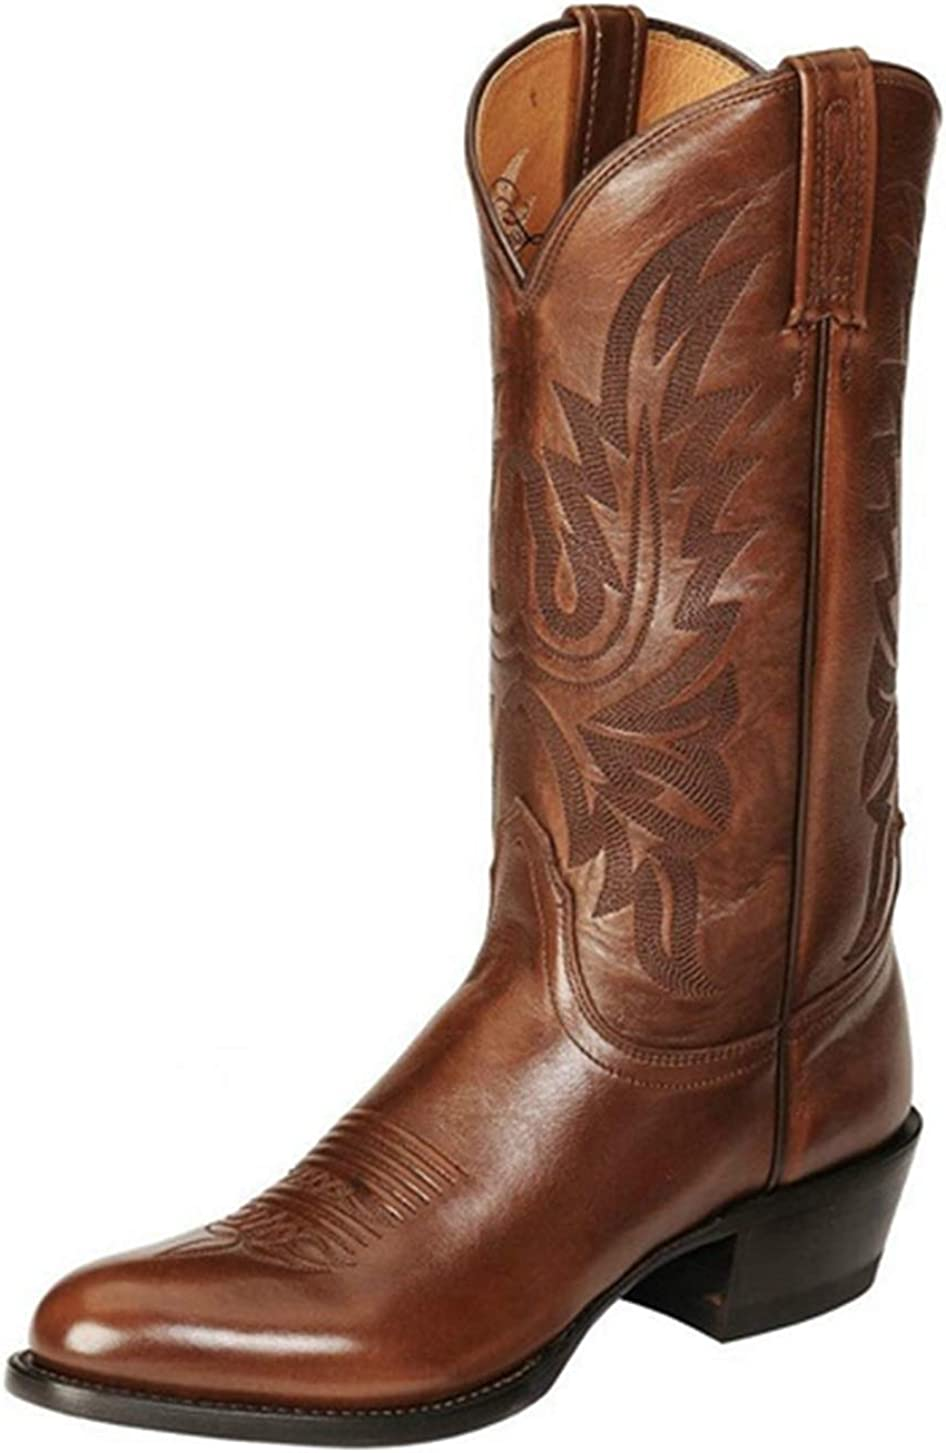 heelchic Women's Retro Western Cowboy Boots Men's Big Size Embroidered Mid Calf Chunky Heel Boots